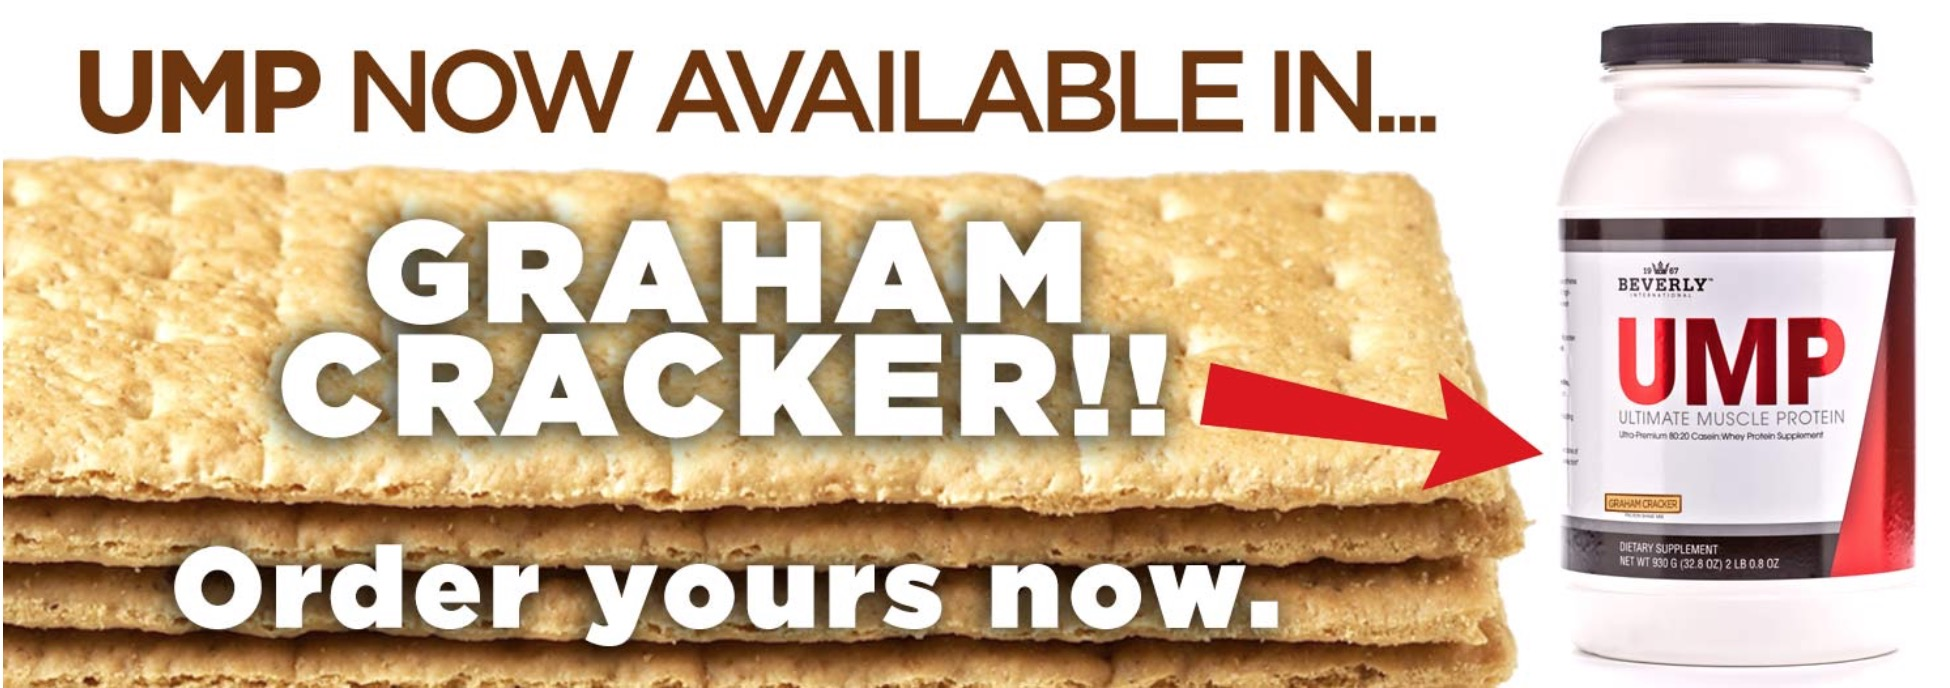 Graham Cracker Ultimate Muscle Protein Beverly International